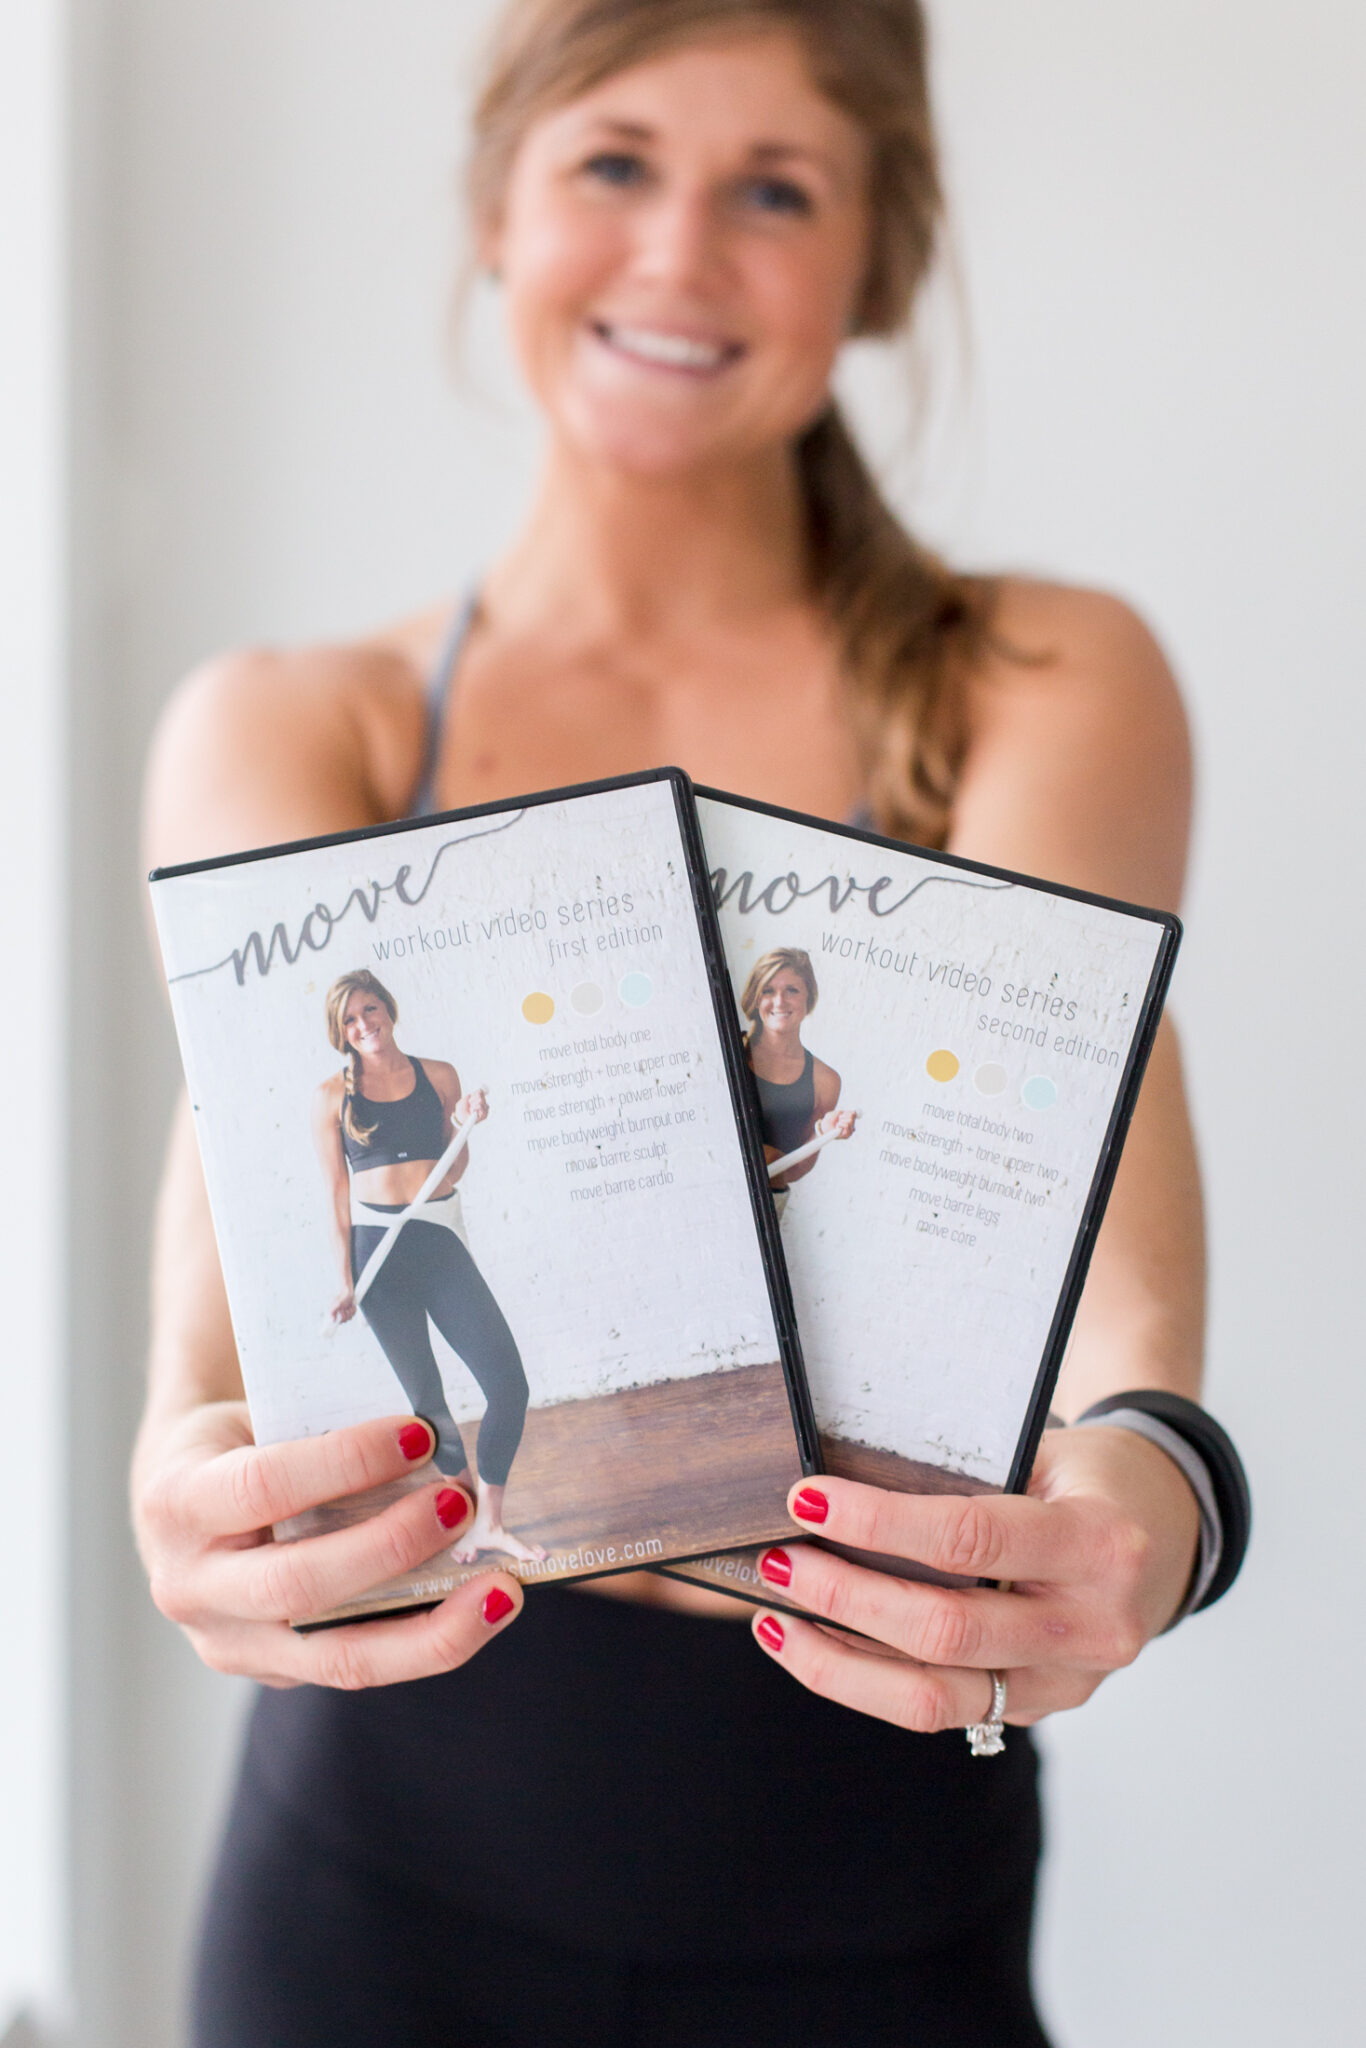 nourish move loves workout video series